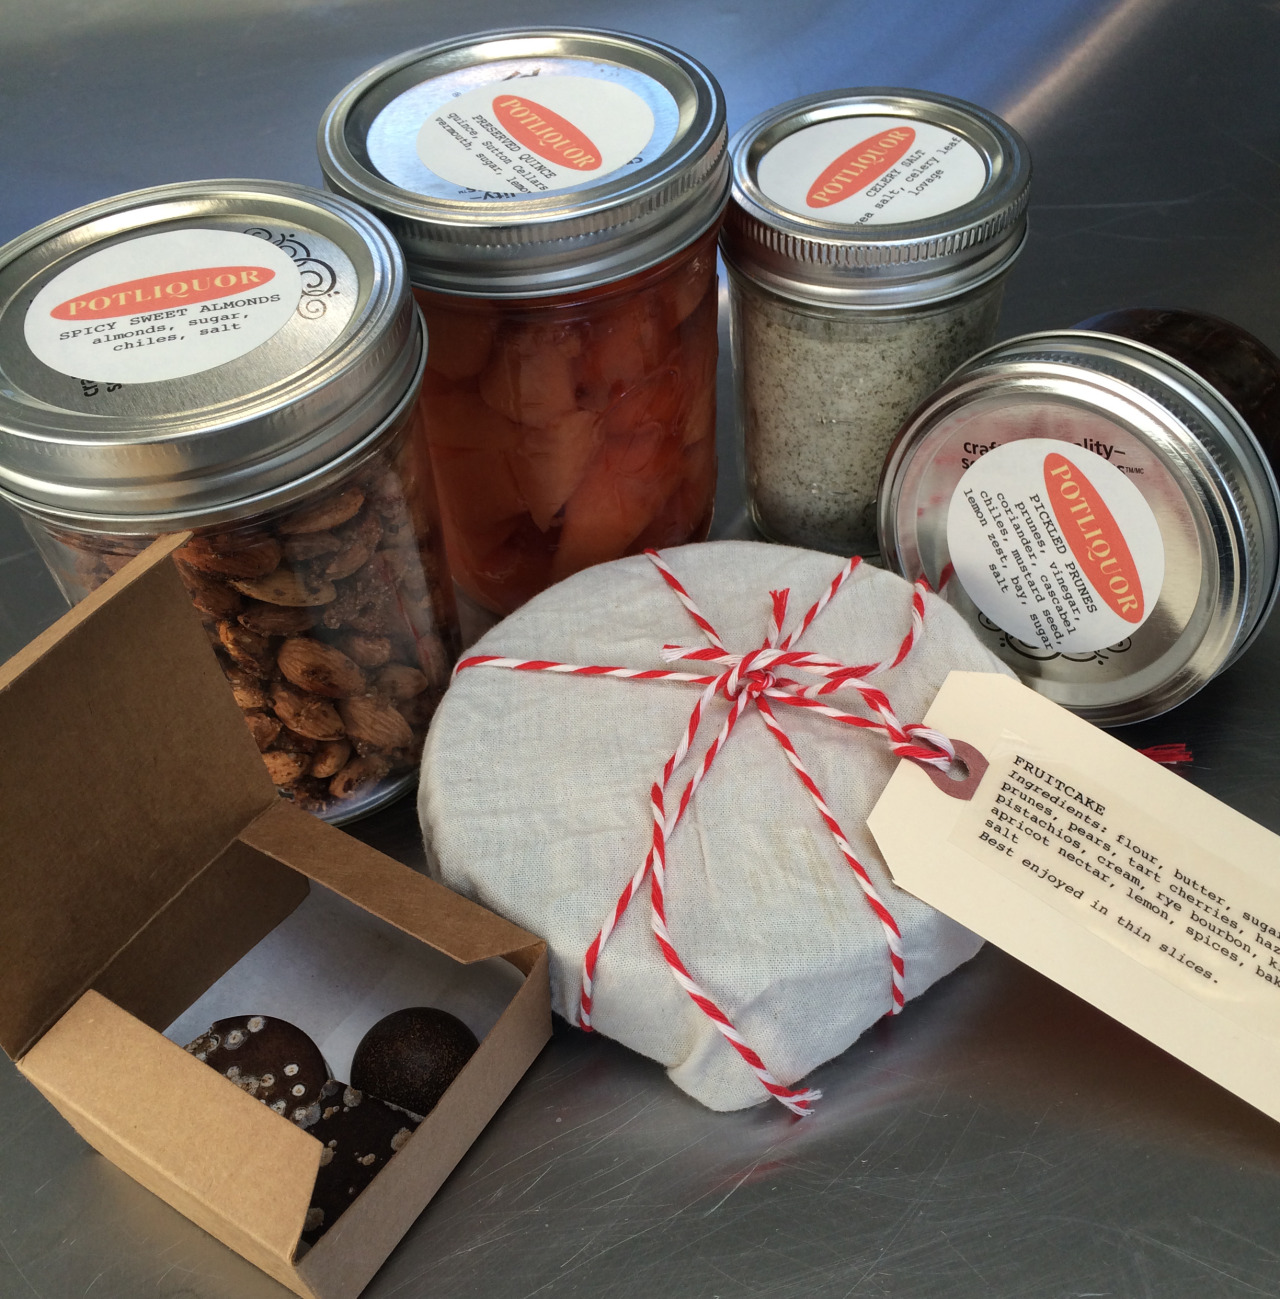 We're offering the Warmth menu again this week for pickup in Berkeley and San Francisco, as well as a shelf-stable version,  Gift . Both are available over at Square Marketplace, along with a few extras like pickled mushrooms, sriracha and stocks. Happy holidays!